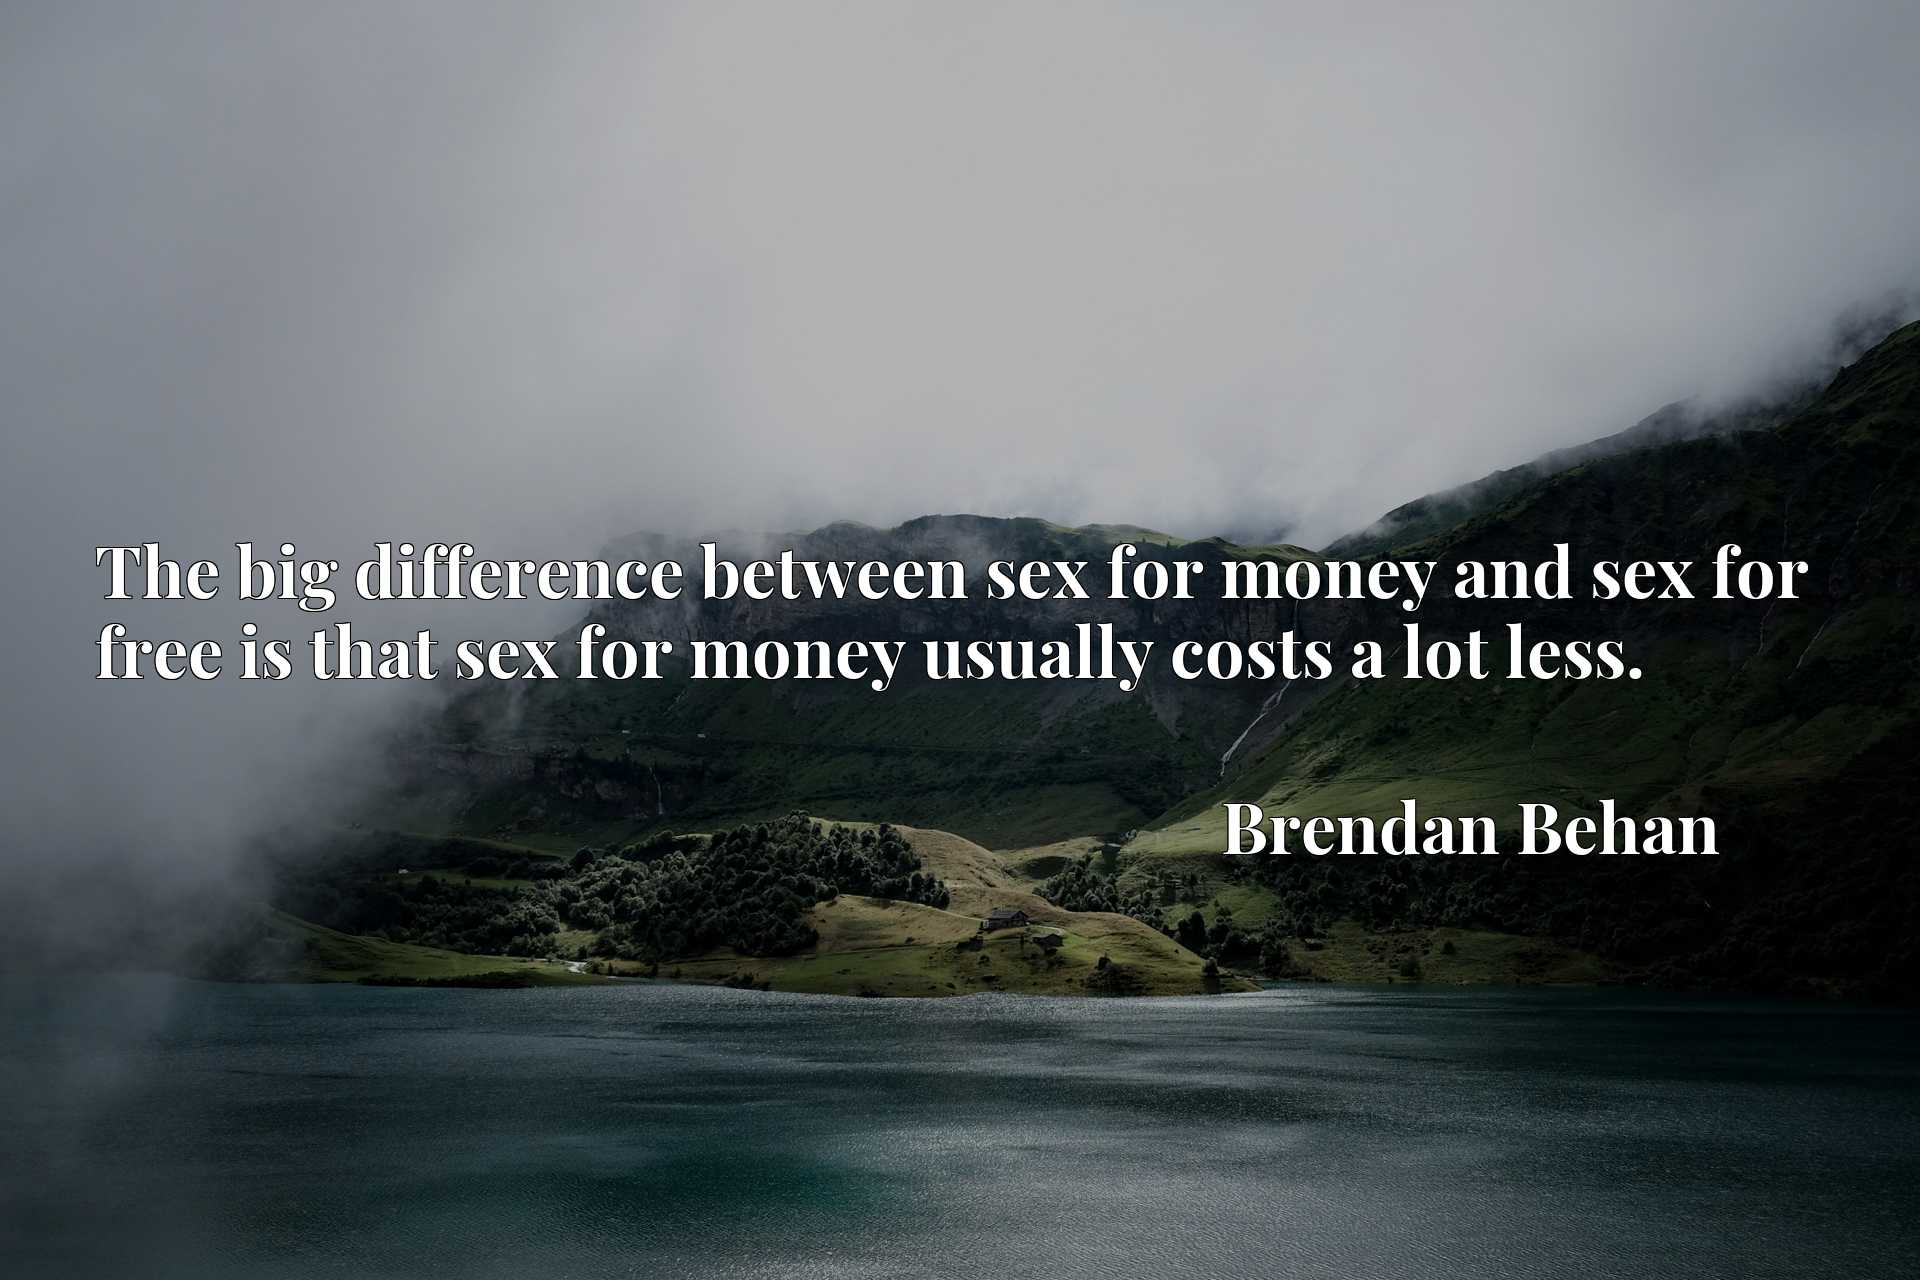 Quote Picture :The big difference between sex for money and sex for free is that sex for money usually costs a lot less.